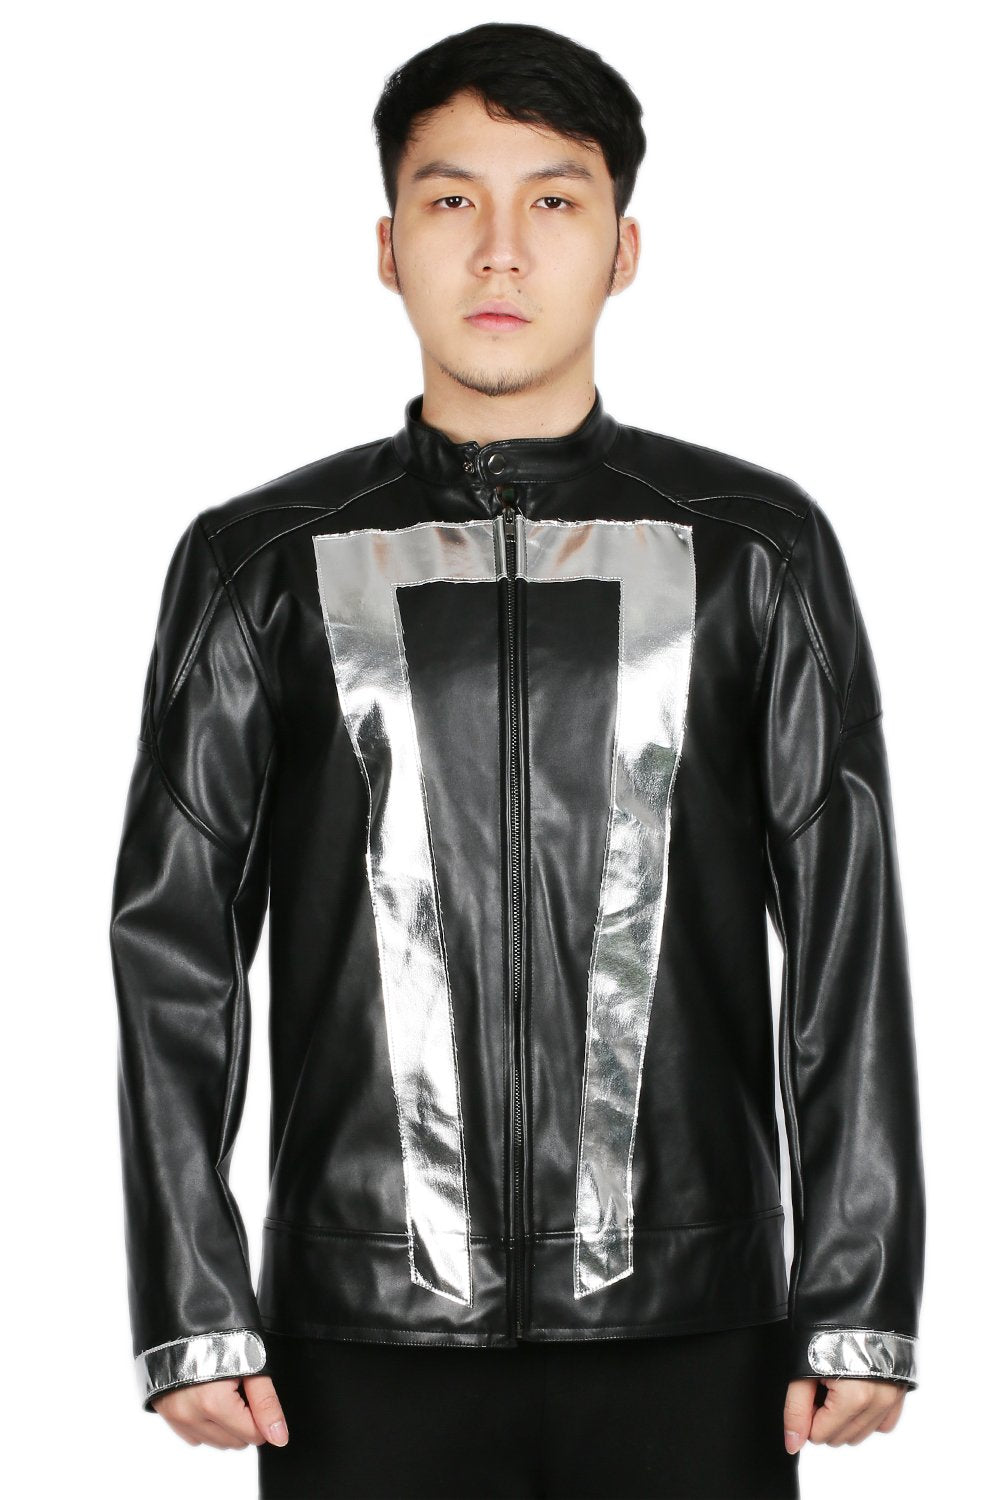 Ghost Rider Jacket Deluxe Black PU Leather Jacket Coat Ghost Rider Cosplay Costume - Xcoser Costume